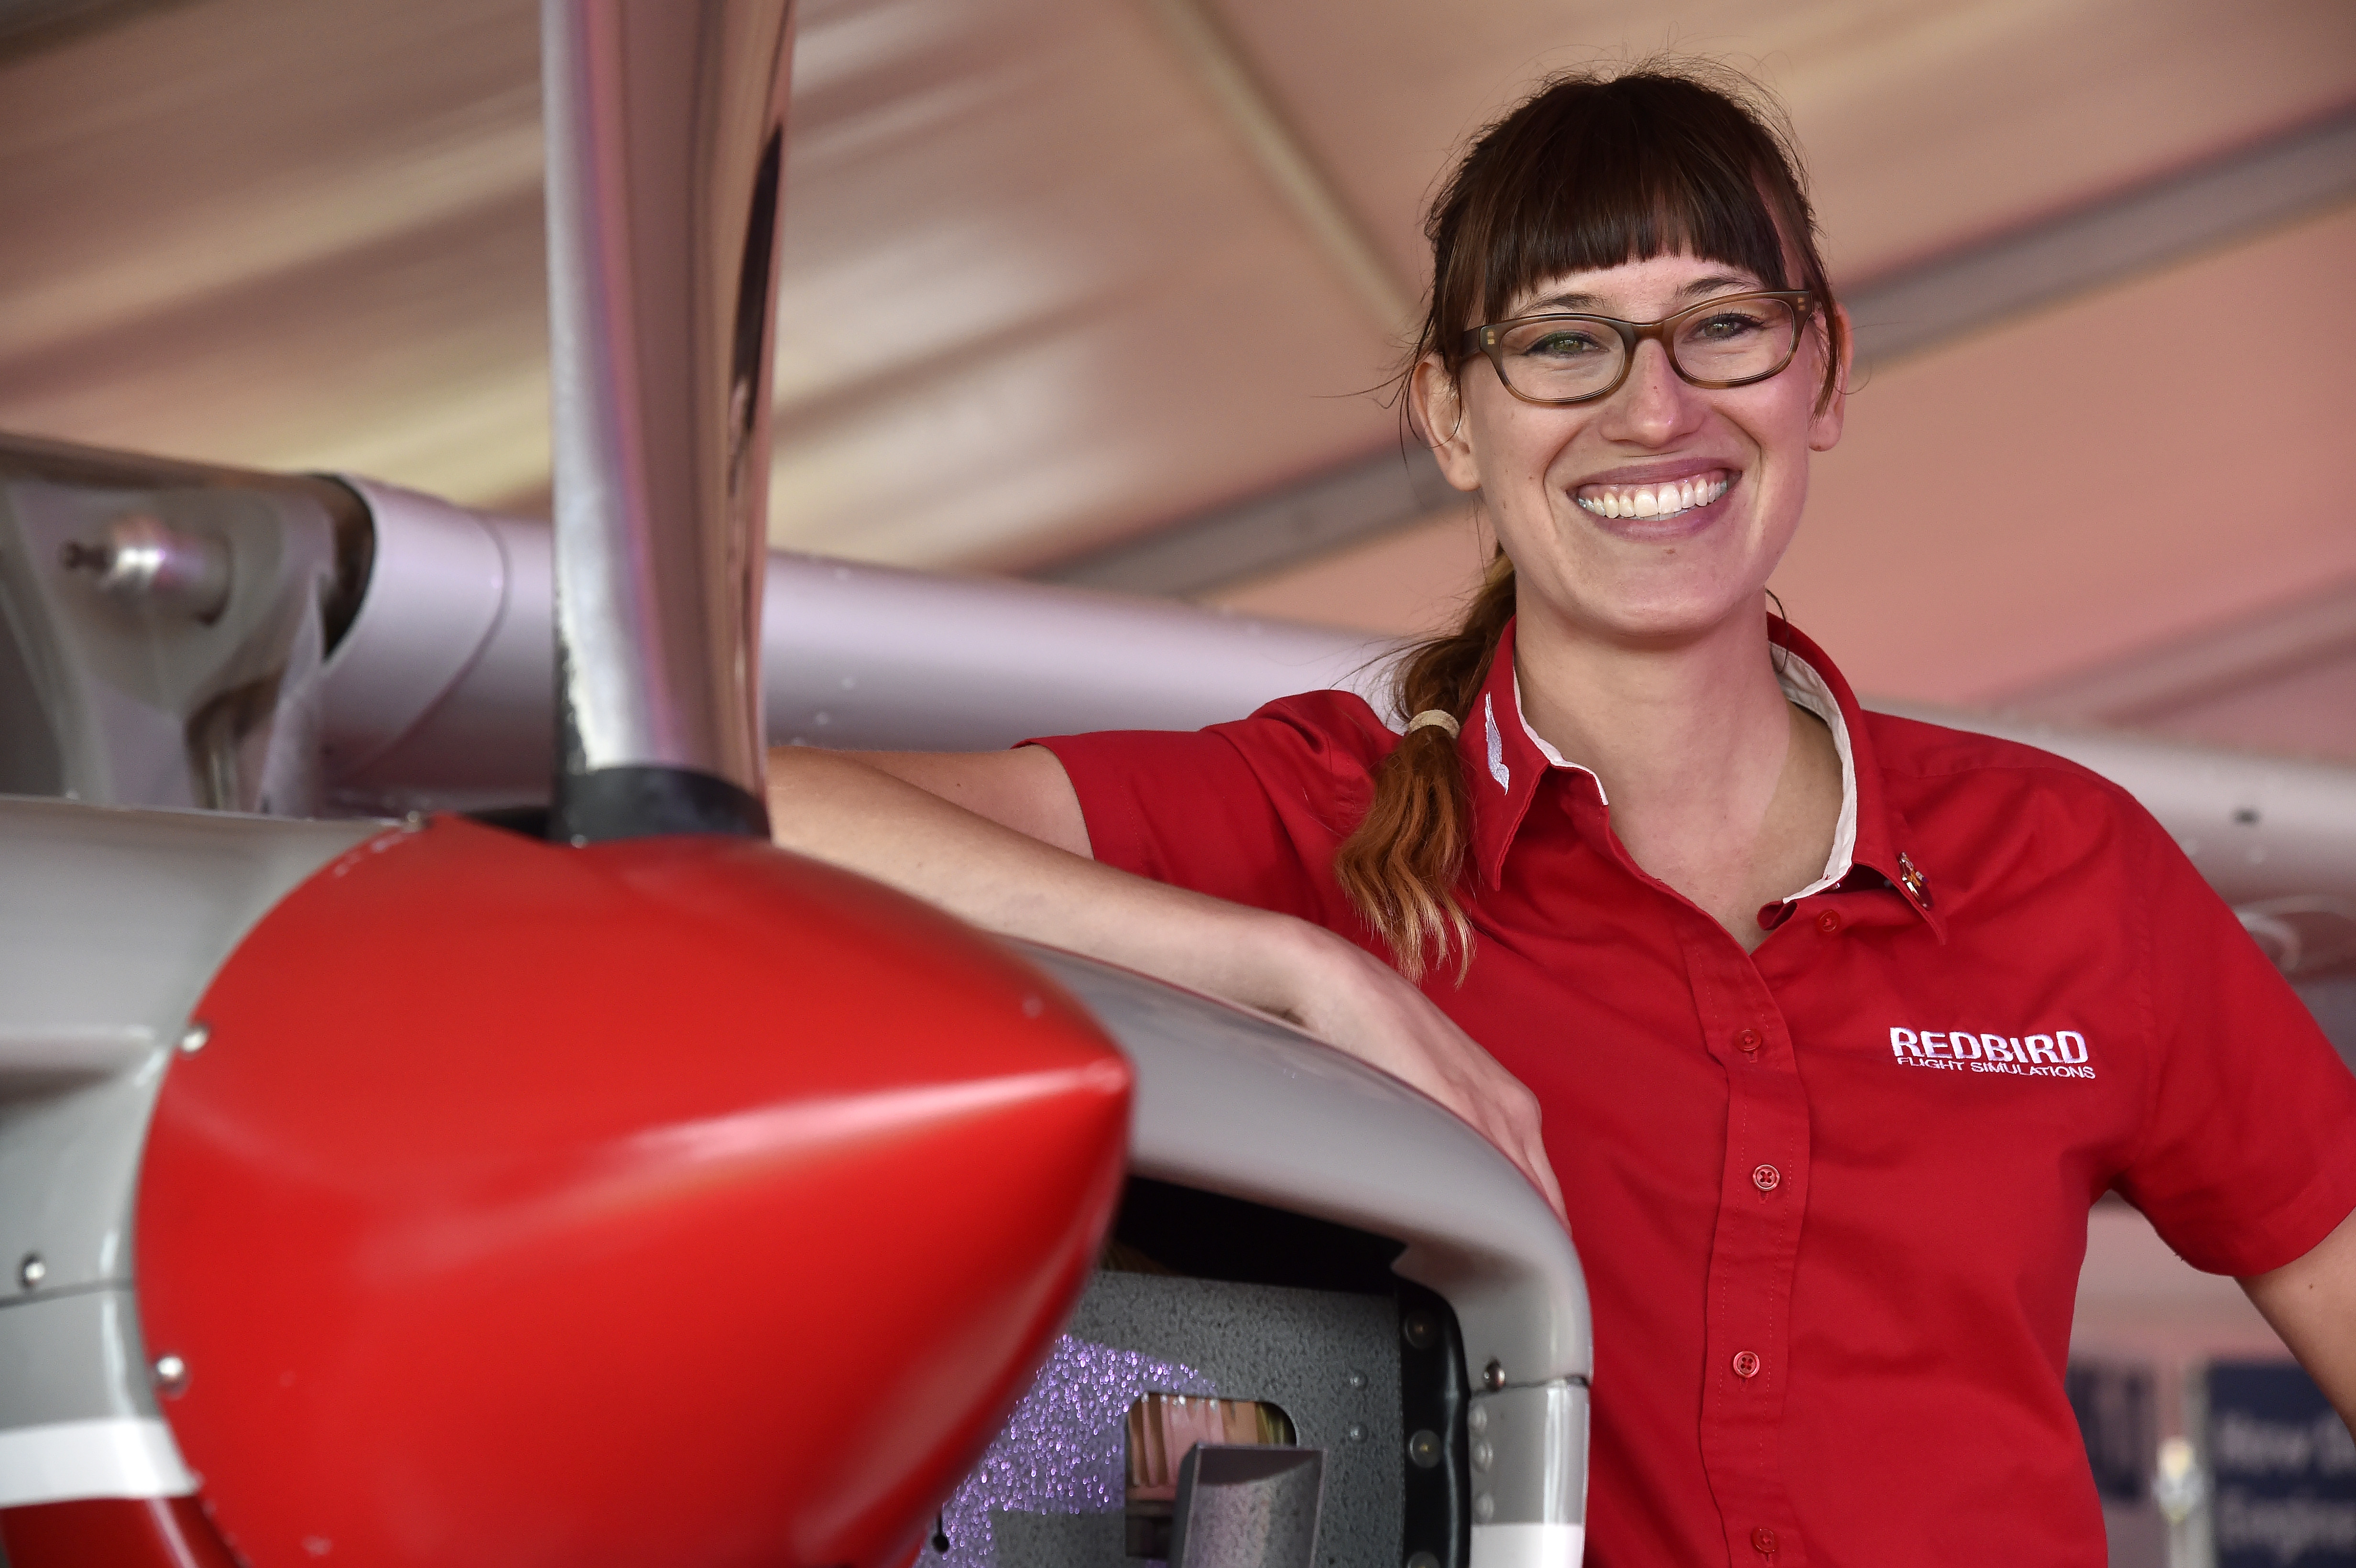 Redbird's Winging It video host Brittney Miculka's next challenge involves steering more than 100 flight instructors, educators, and flight school managers through Redbird Flight Simulations' annual Migration conference in Texas. Miculka is shown at the Redbird booth during EAA AirVenture 2016 at Wittman Regional Airport in Oshkosh. Photo by David Tulis.